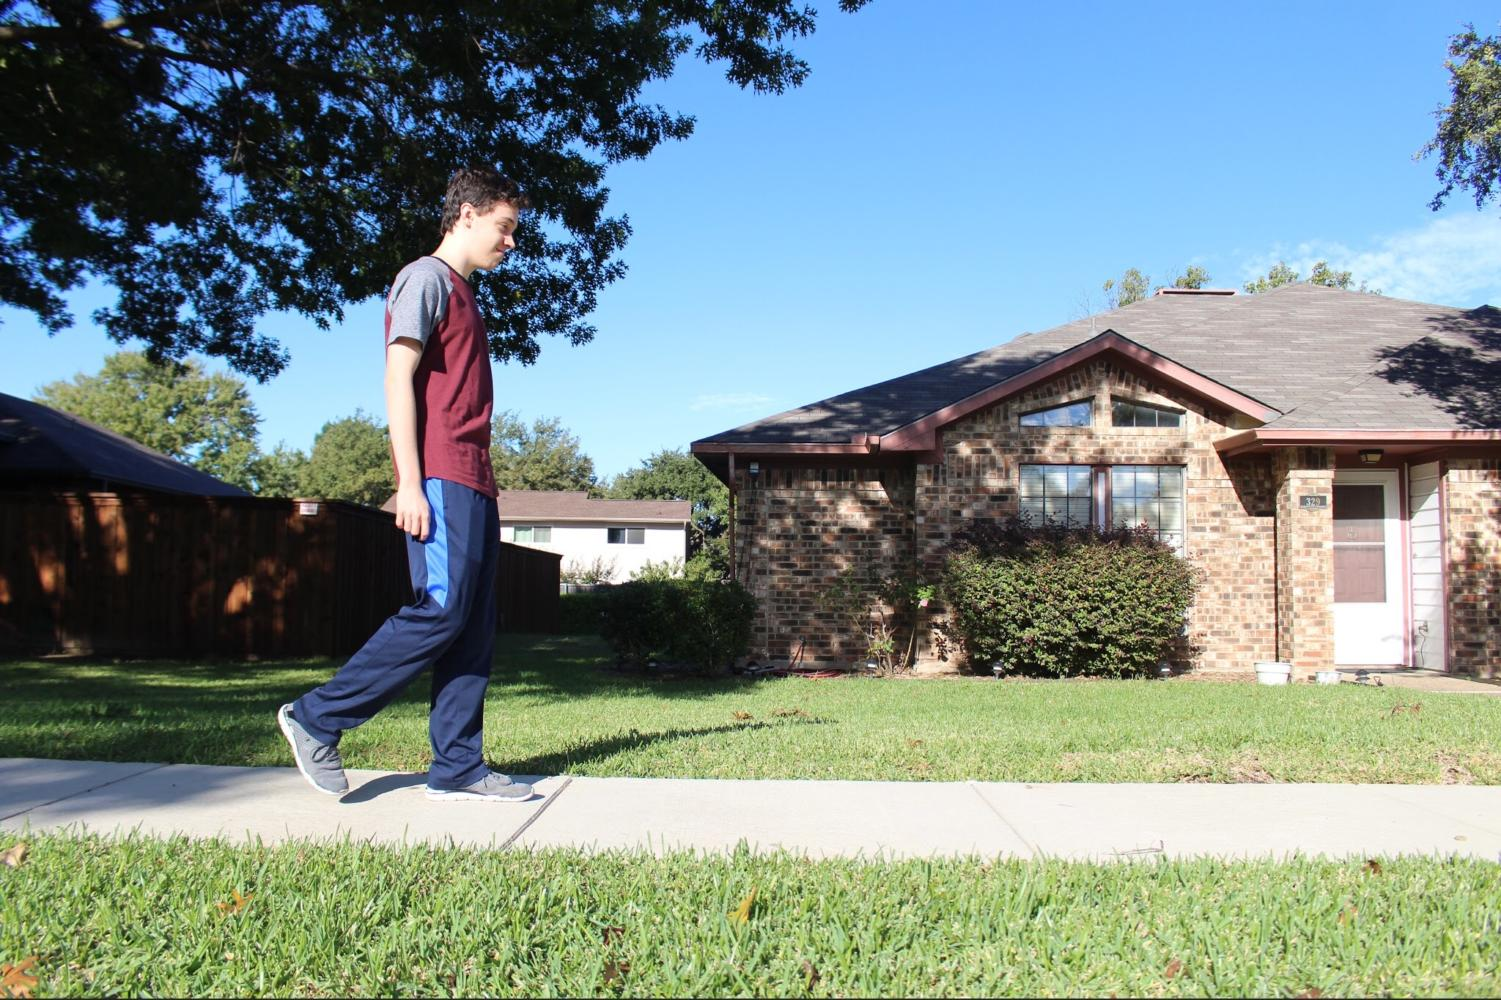 The Sidekick Entertainment Editor Anthony Cesario goes for a walk on Sunday in his neighborhood. Walking has benefitted Cesario through decreased stress, improved mood and a greater appreciation for the outdoors.